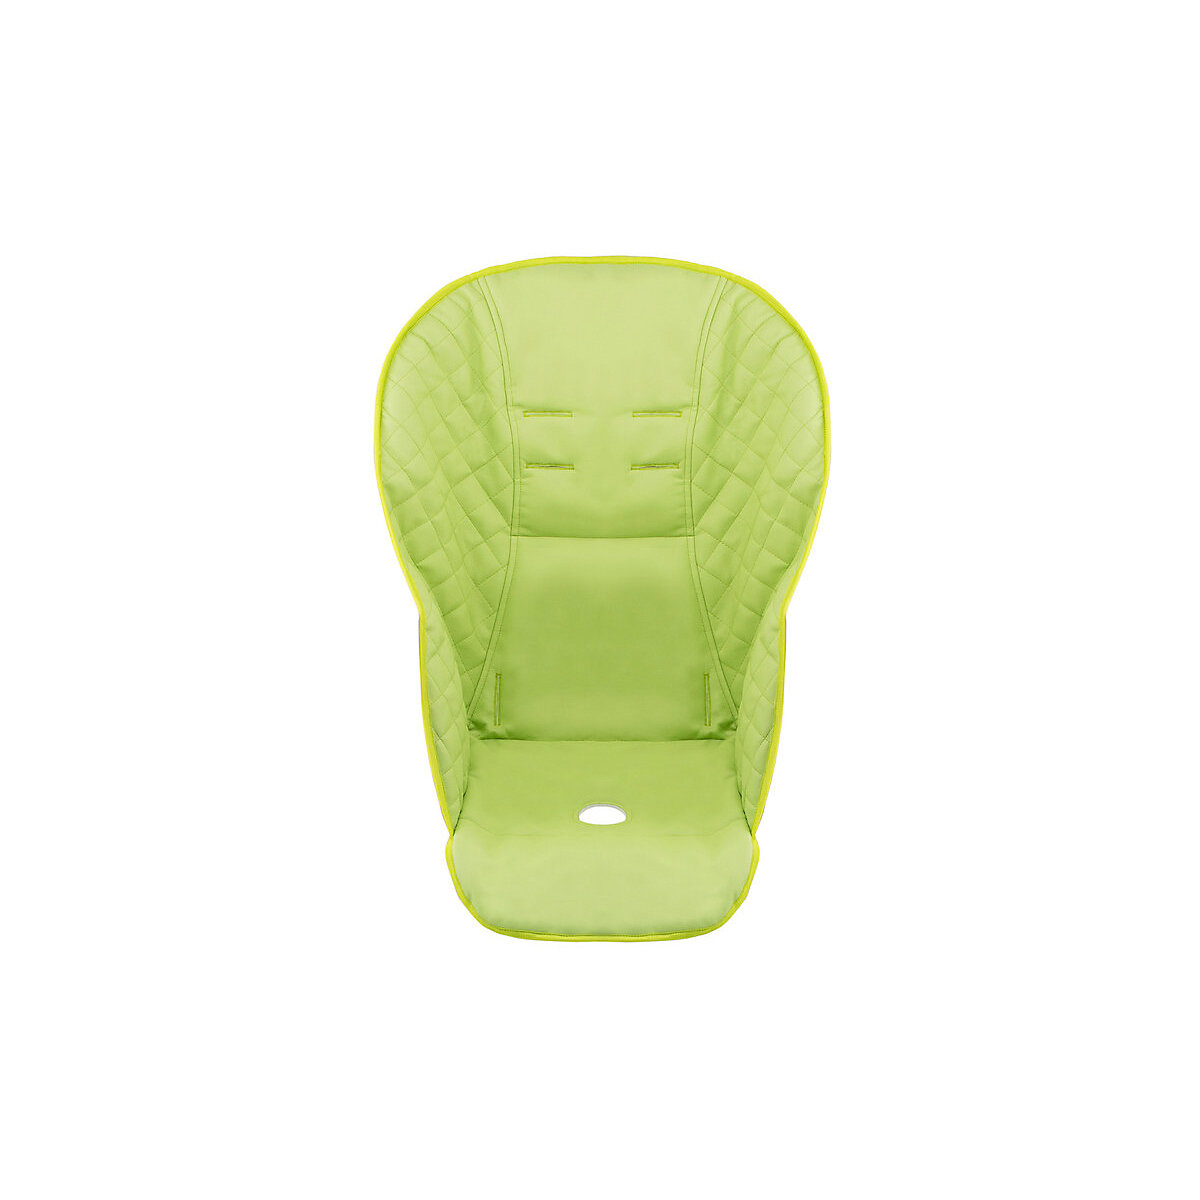 Highchairs ROXY-KIDS 10734351 Universal Case For Chair For Children Boy And Girl MTpromo